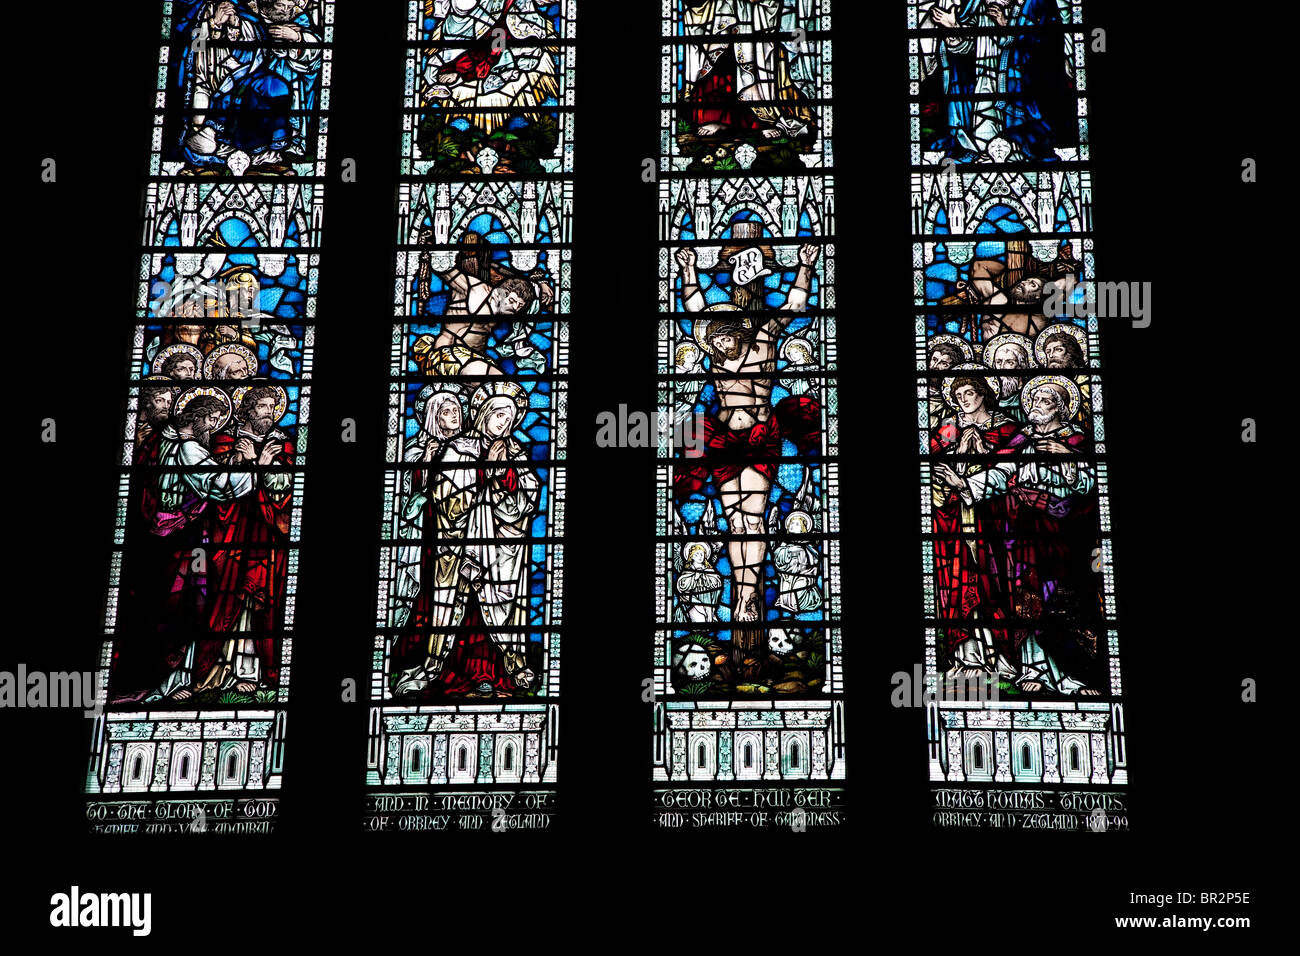 Stained Glass Window in Kirkwall Cathedral in the Orkney Islands, Scotland - Stock Image